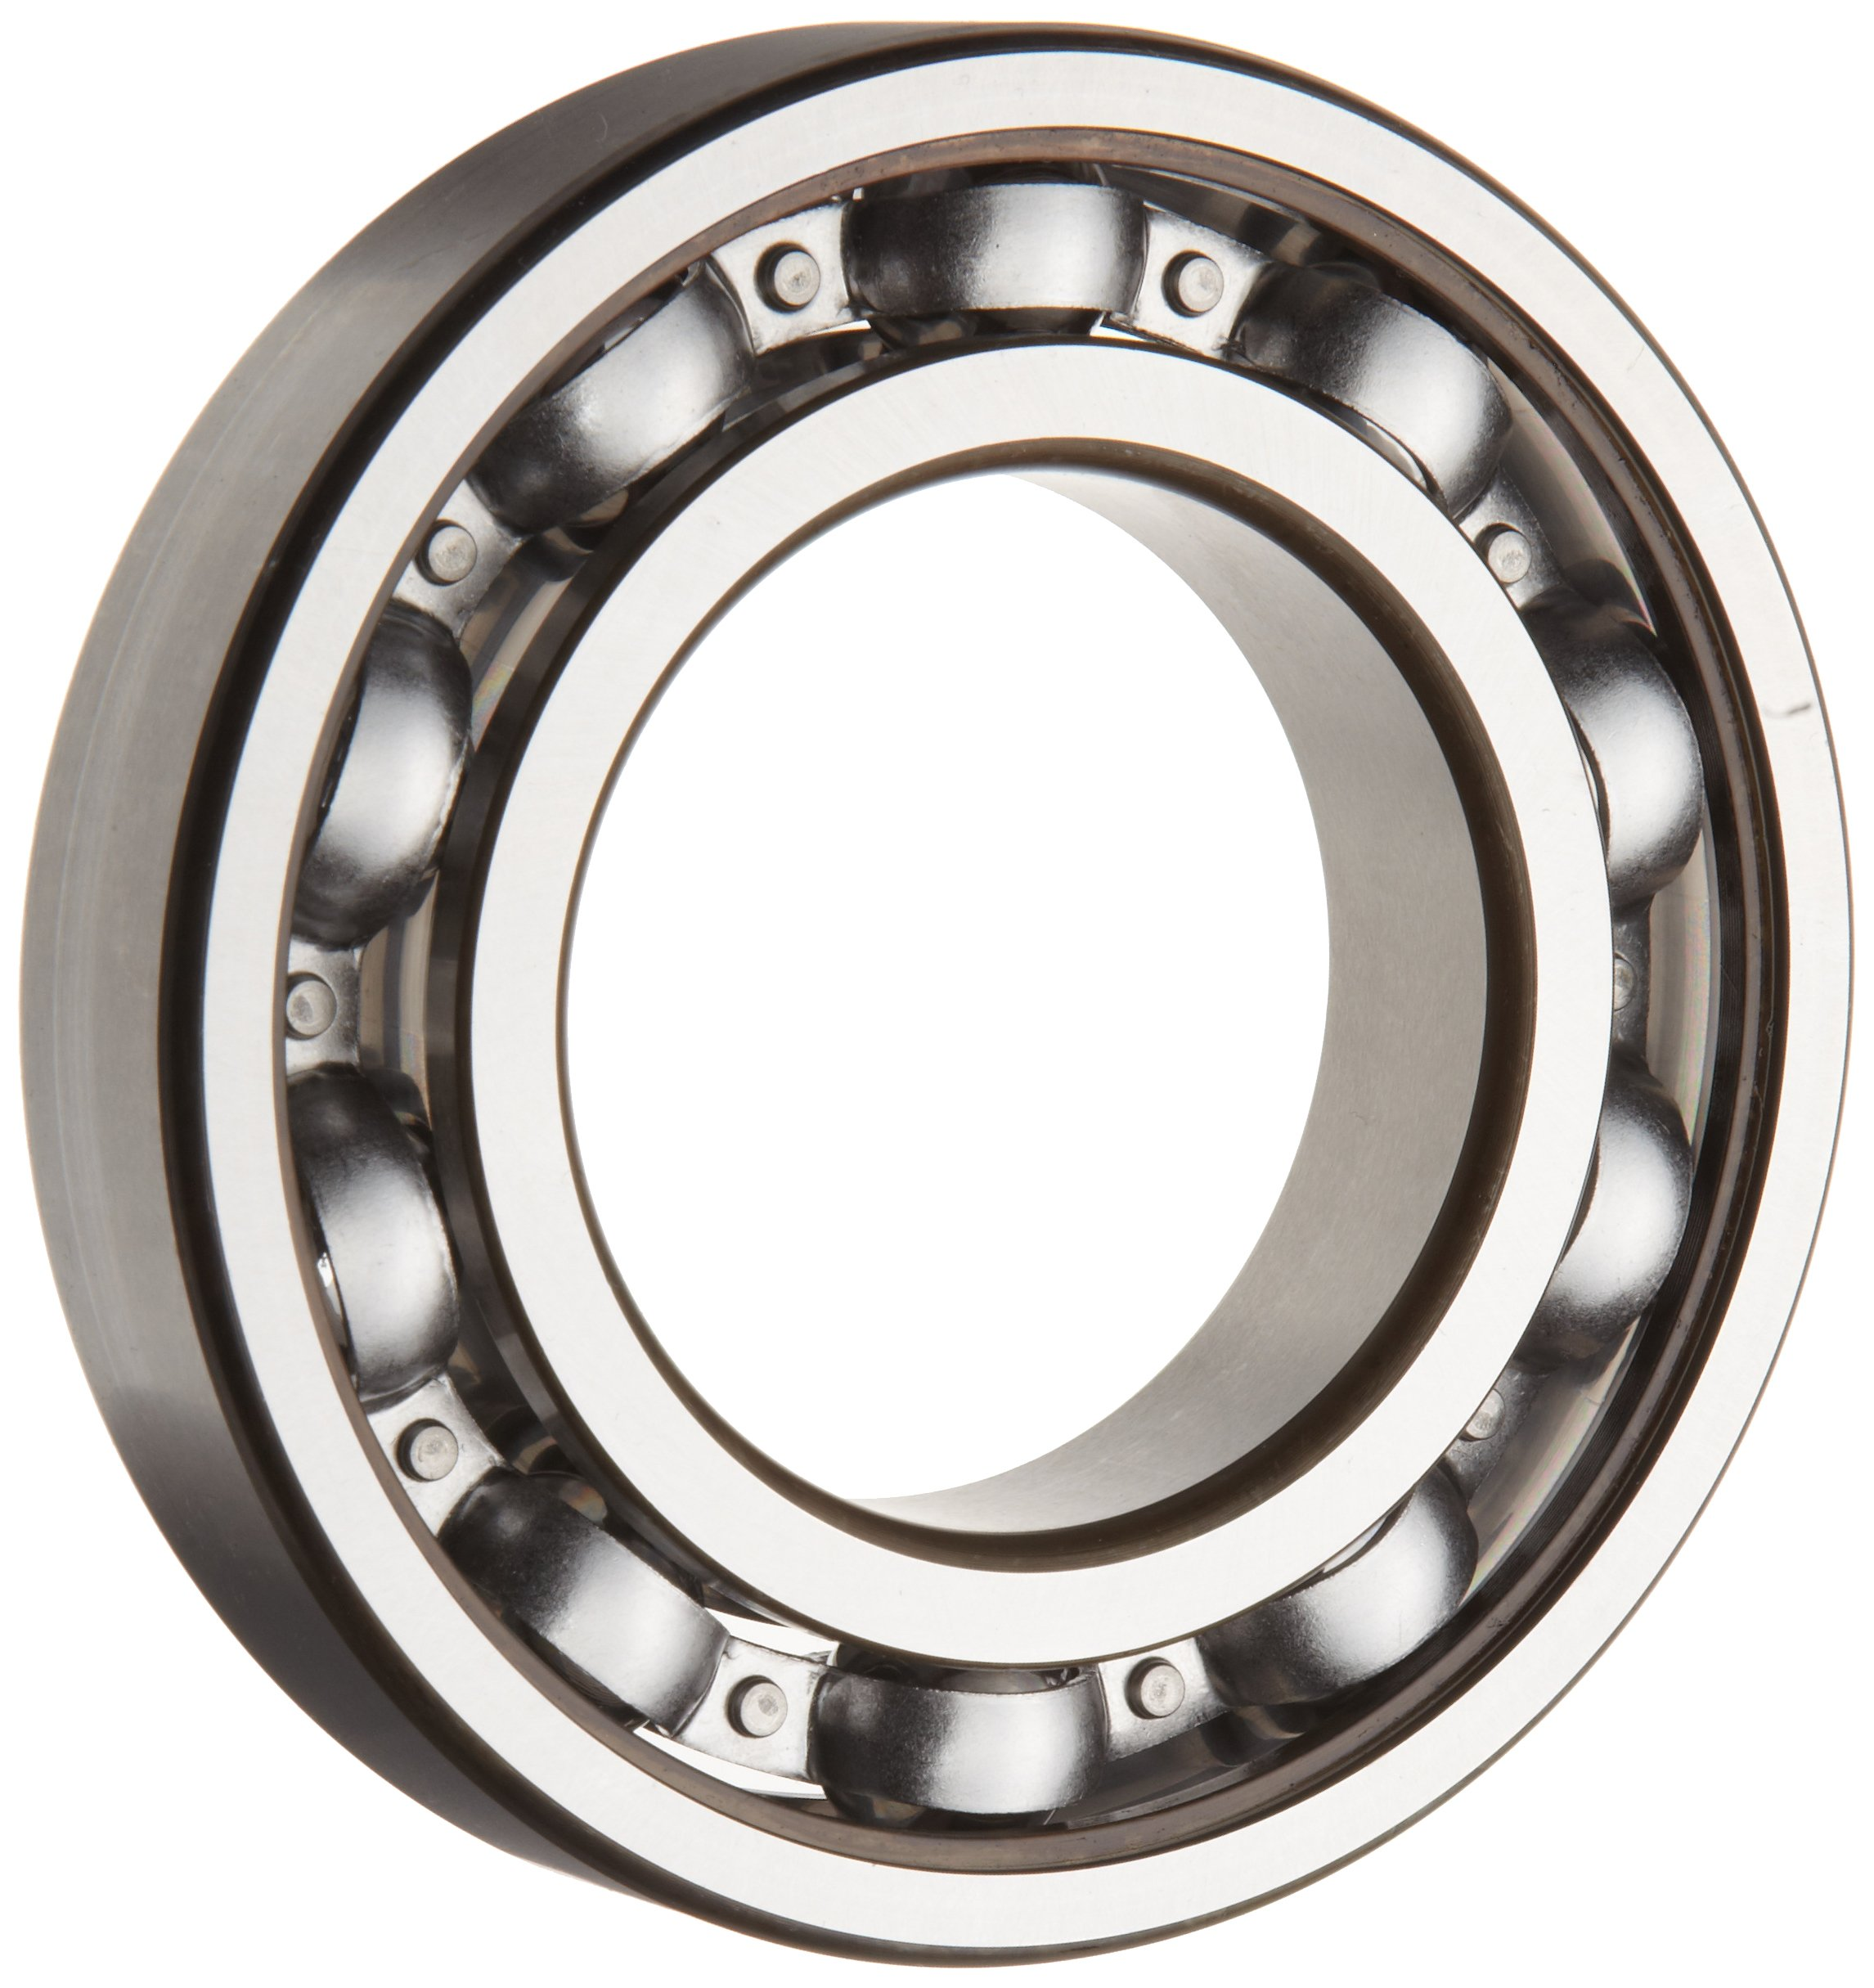 SKF 6201 JEM Light Series Deep Groove Ball Bearing, Deep Groove Design, ABEC 1 Precision, Open, Steel Cage, C3 Clearance, 12mm Bore, 32mm OD, 10mm Width, 697.0 pounds Static Load Capacity, 1550.00 pounds Dynamic Load Capacity